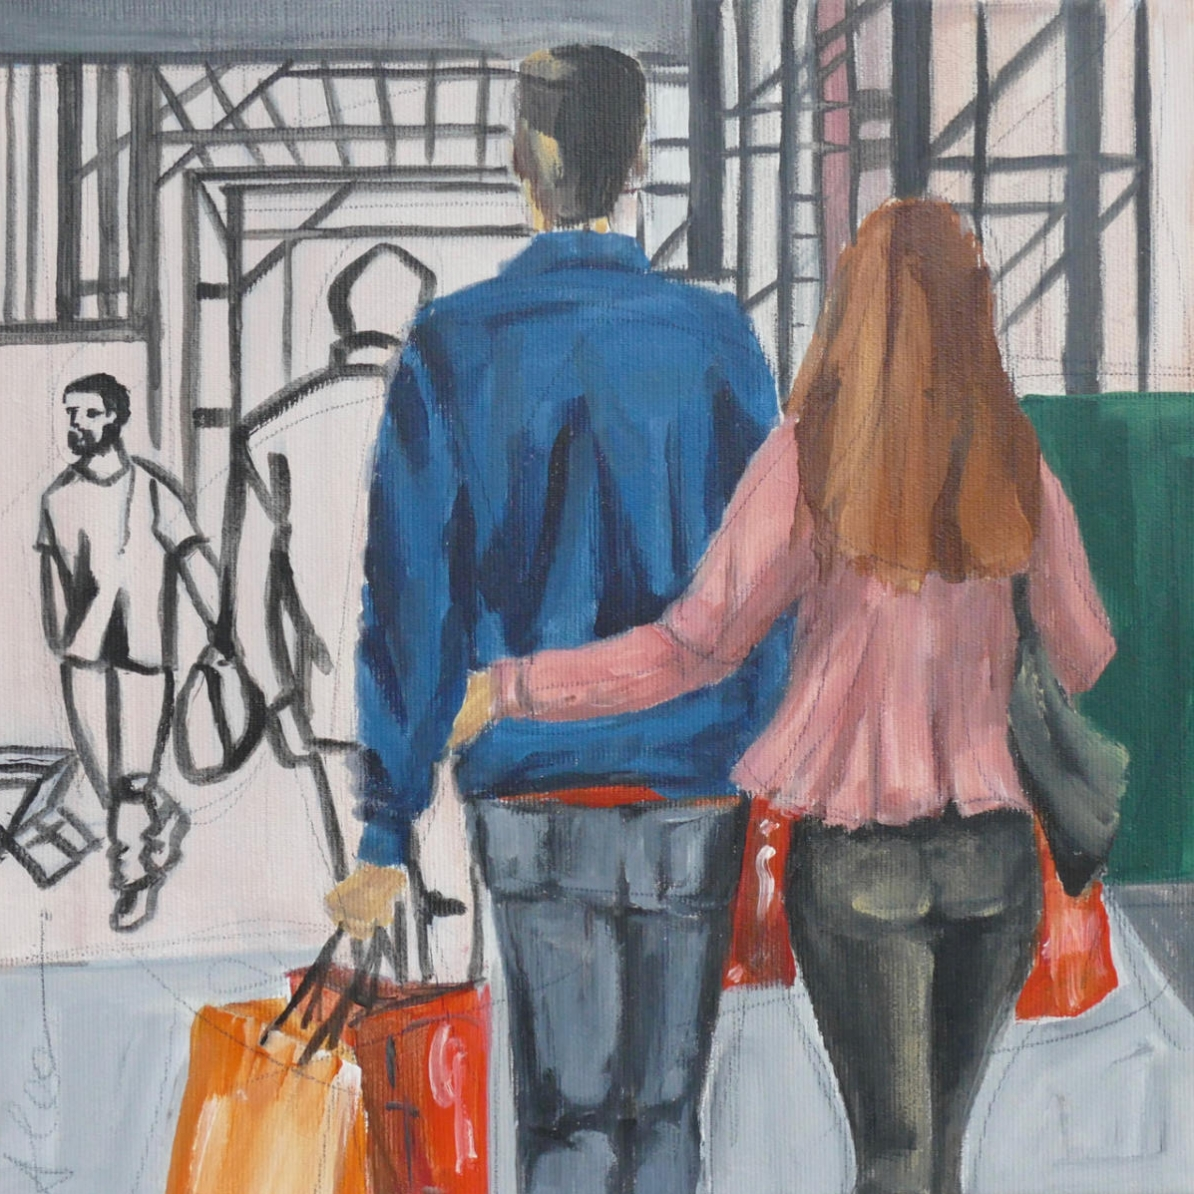 Shoppingtour I 30x30cm